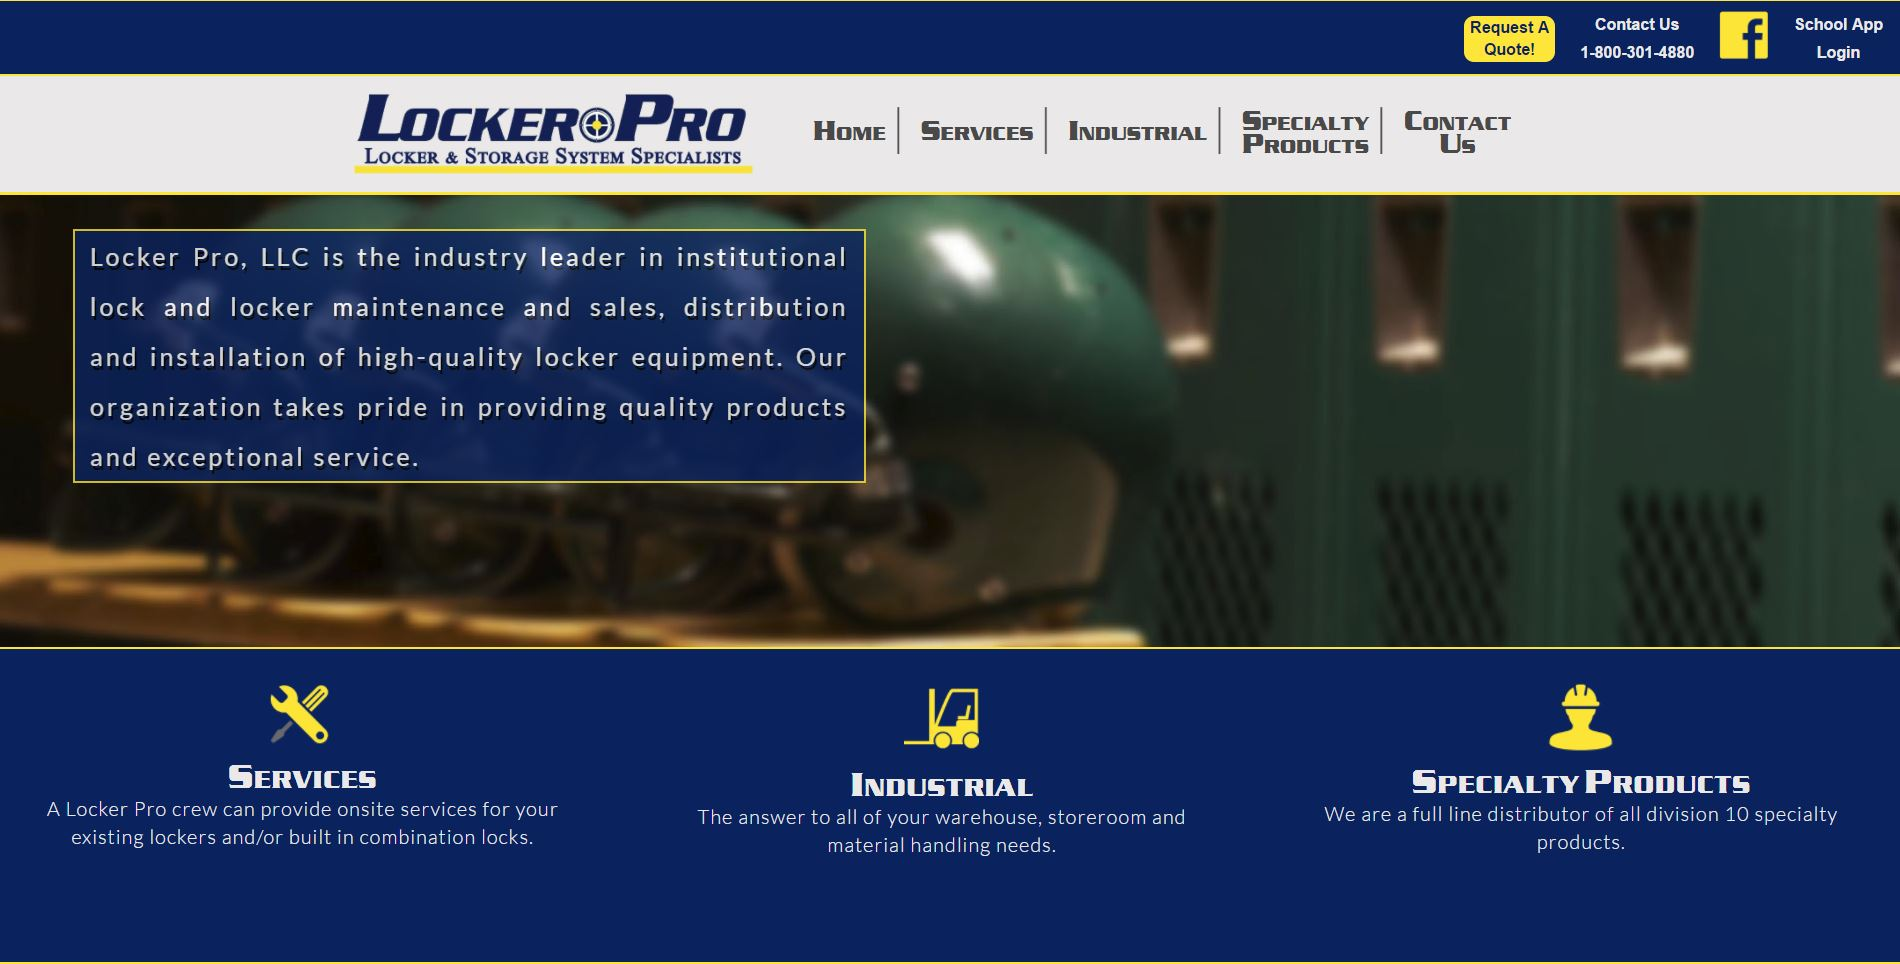 Locker Pro, LLC is the industry leader in institutional lock and locker maintenance and sales, distribution and installation of high-quality locker equipment.